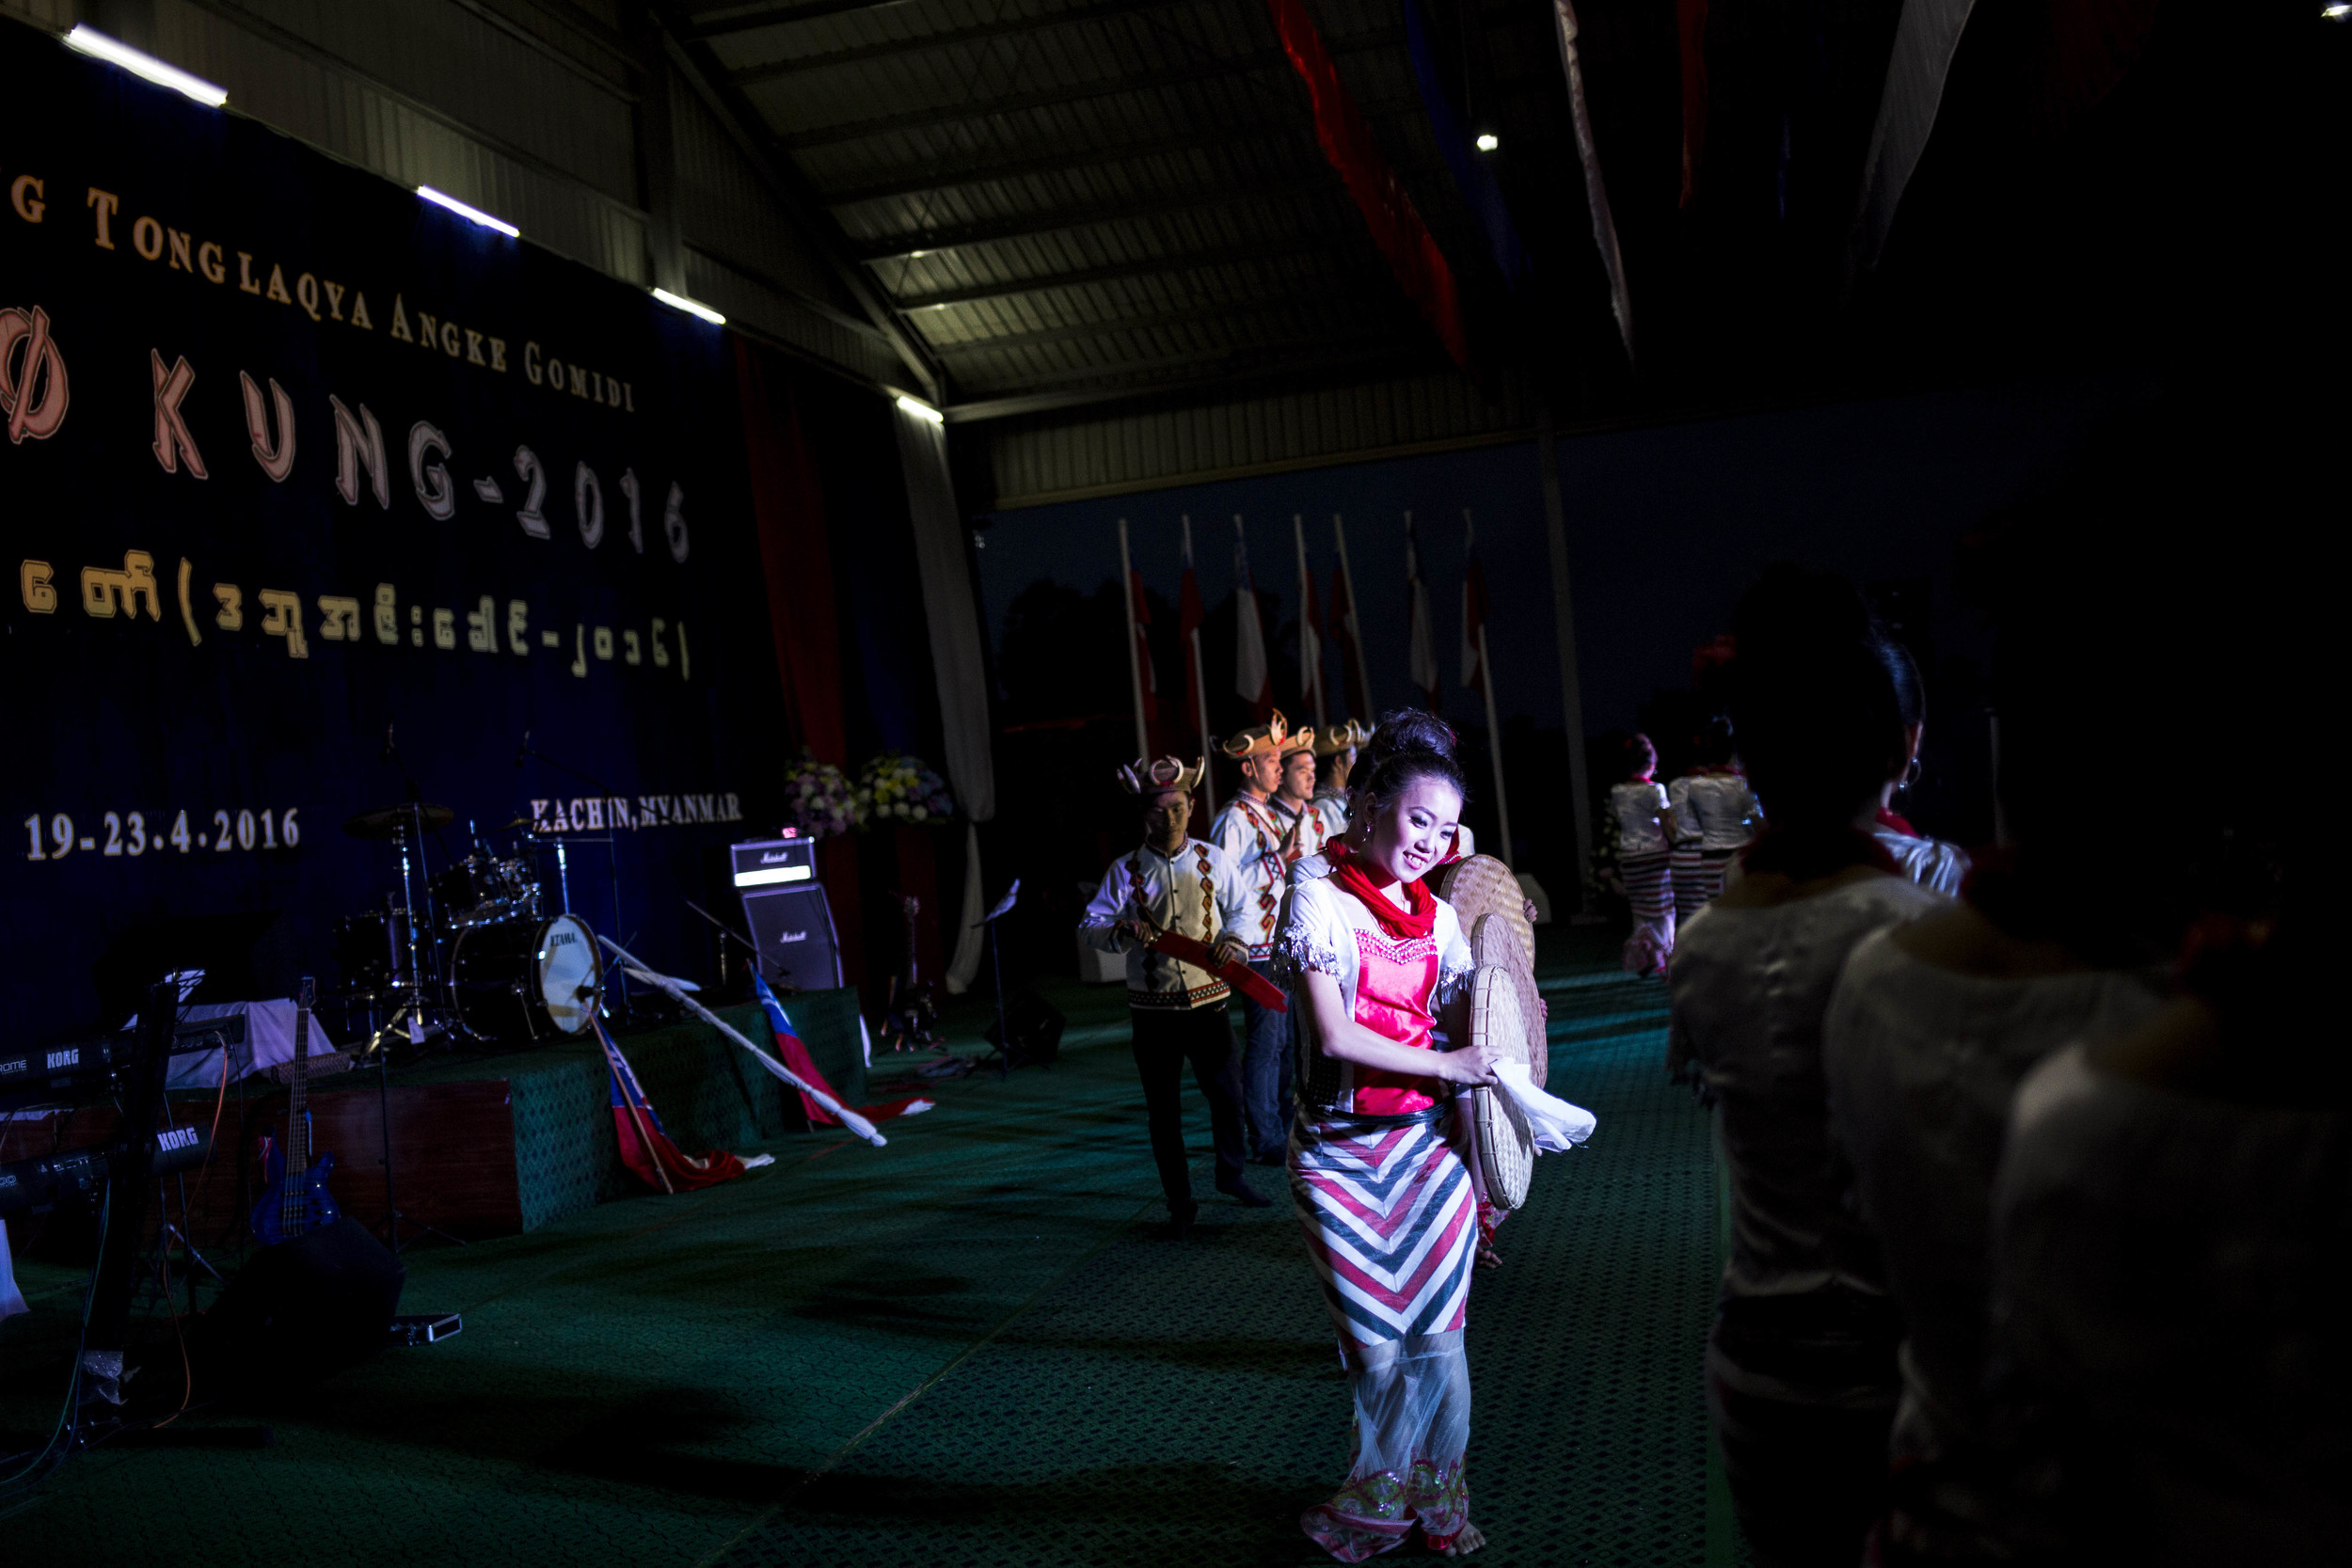 Dance competitions organized by the Rawang youth groups from Yangon, Mandalay, Putao and several other cities. Photo by Ann Wang